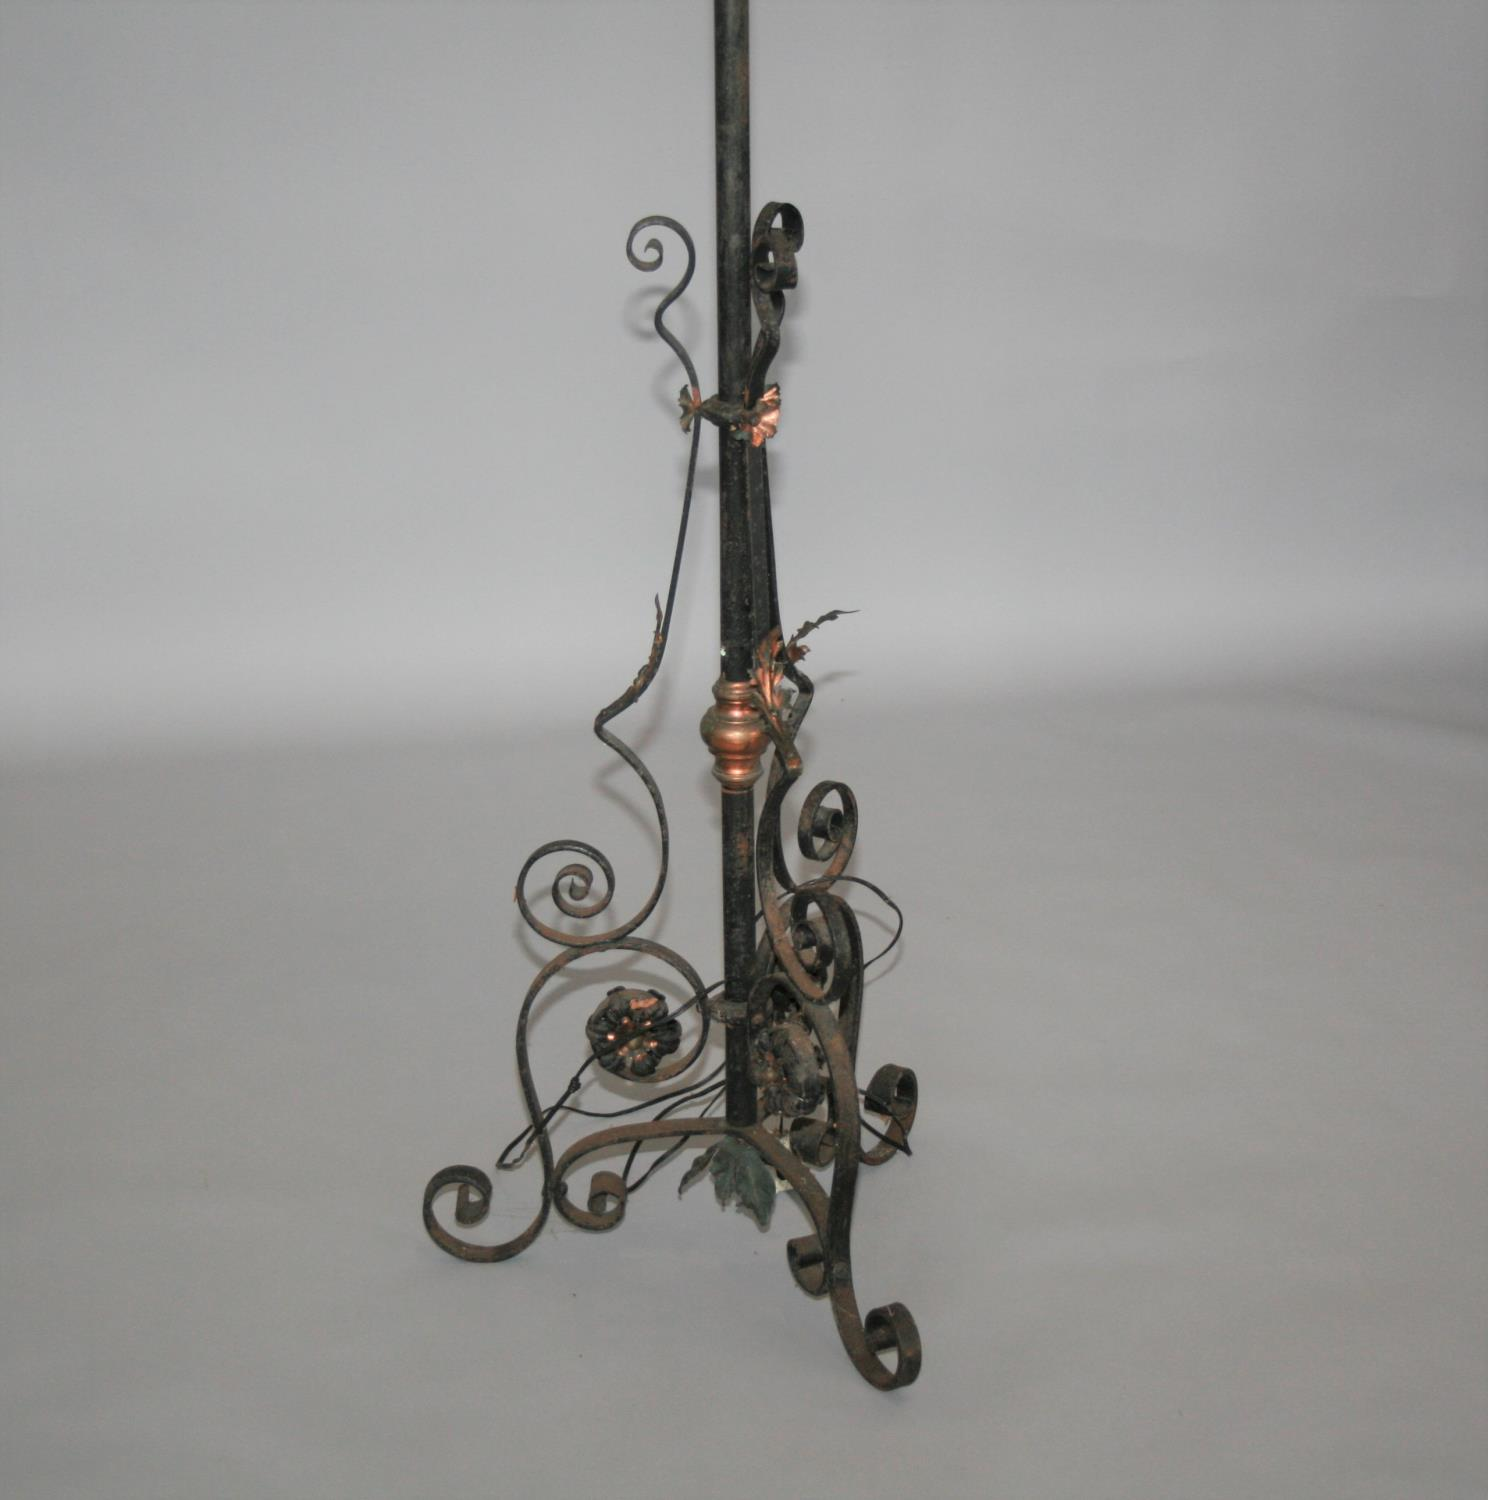 Wrought iron and copper telescopic lamp with lantern top 40 W x 90 H - Image 2 of 3